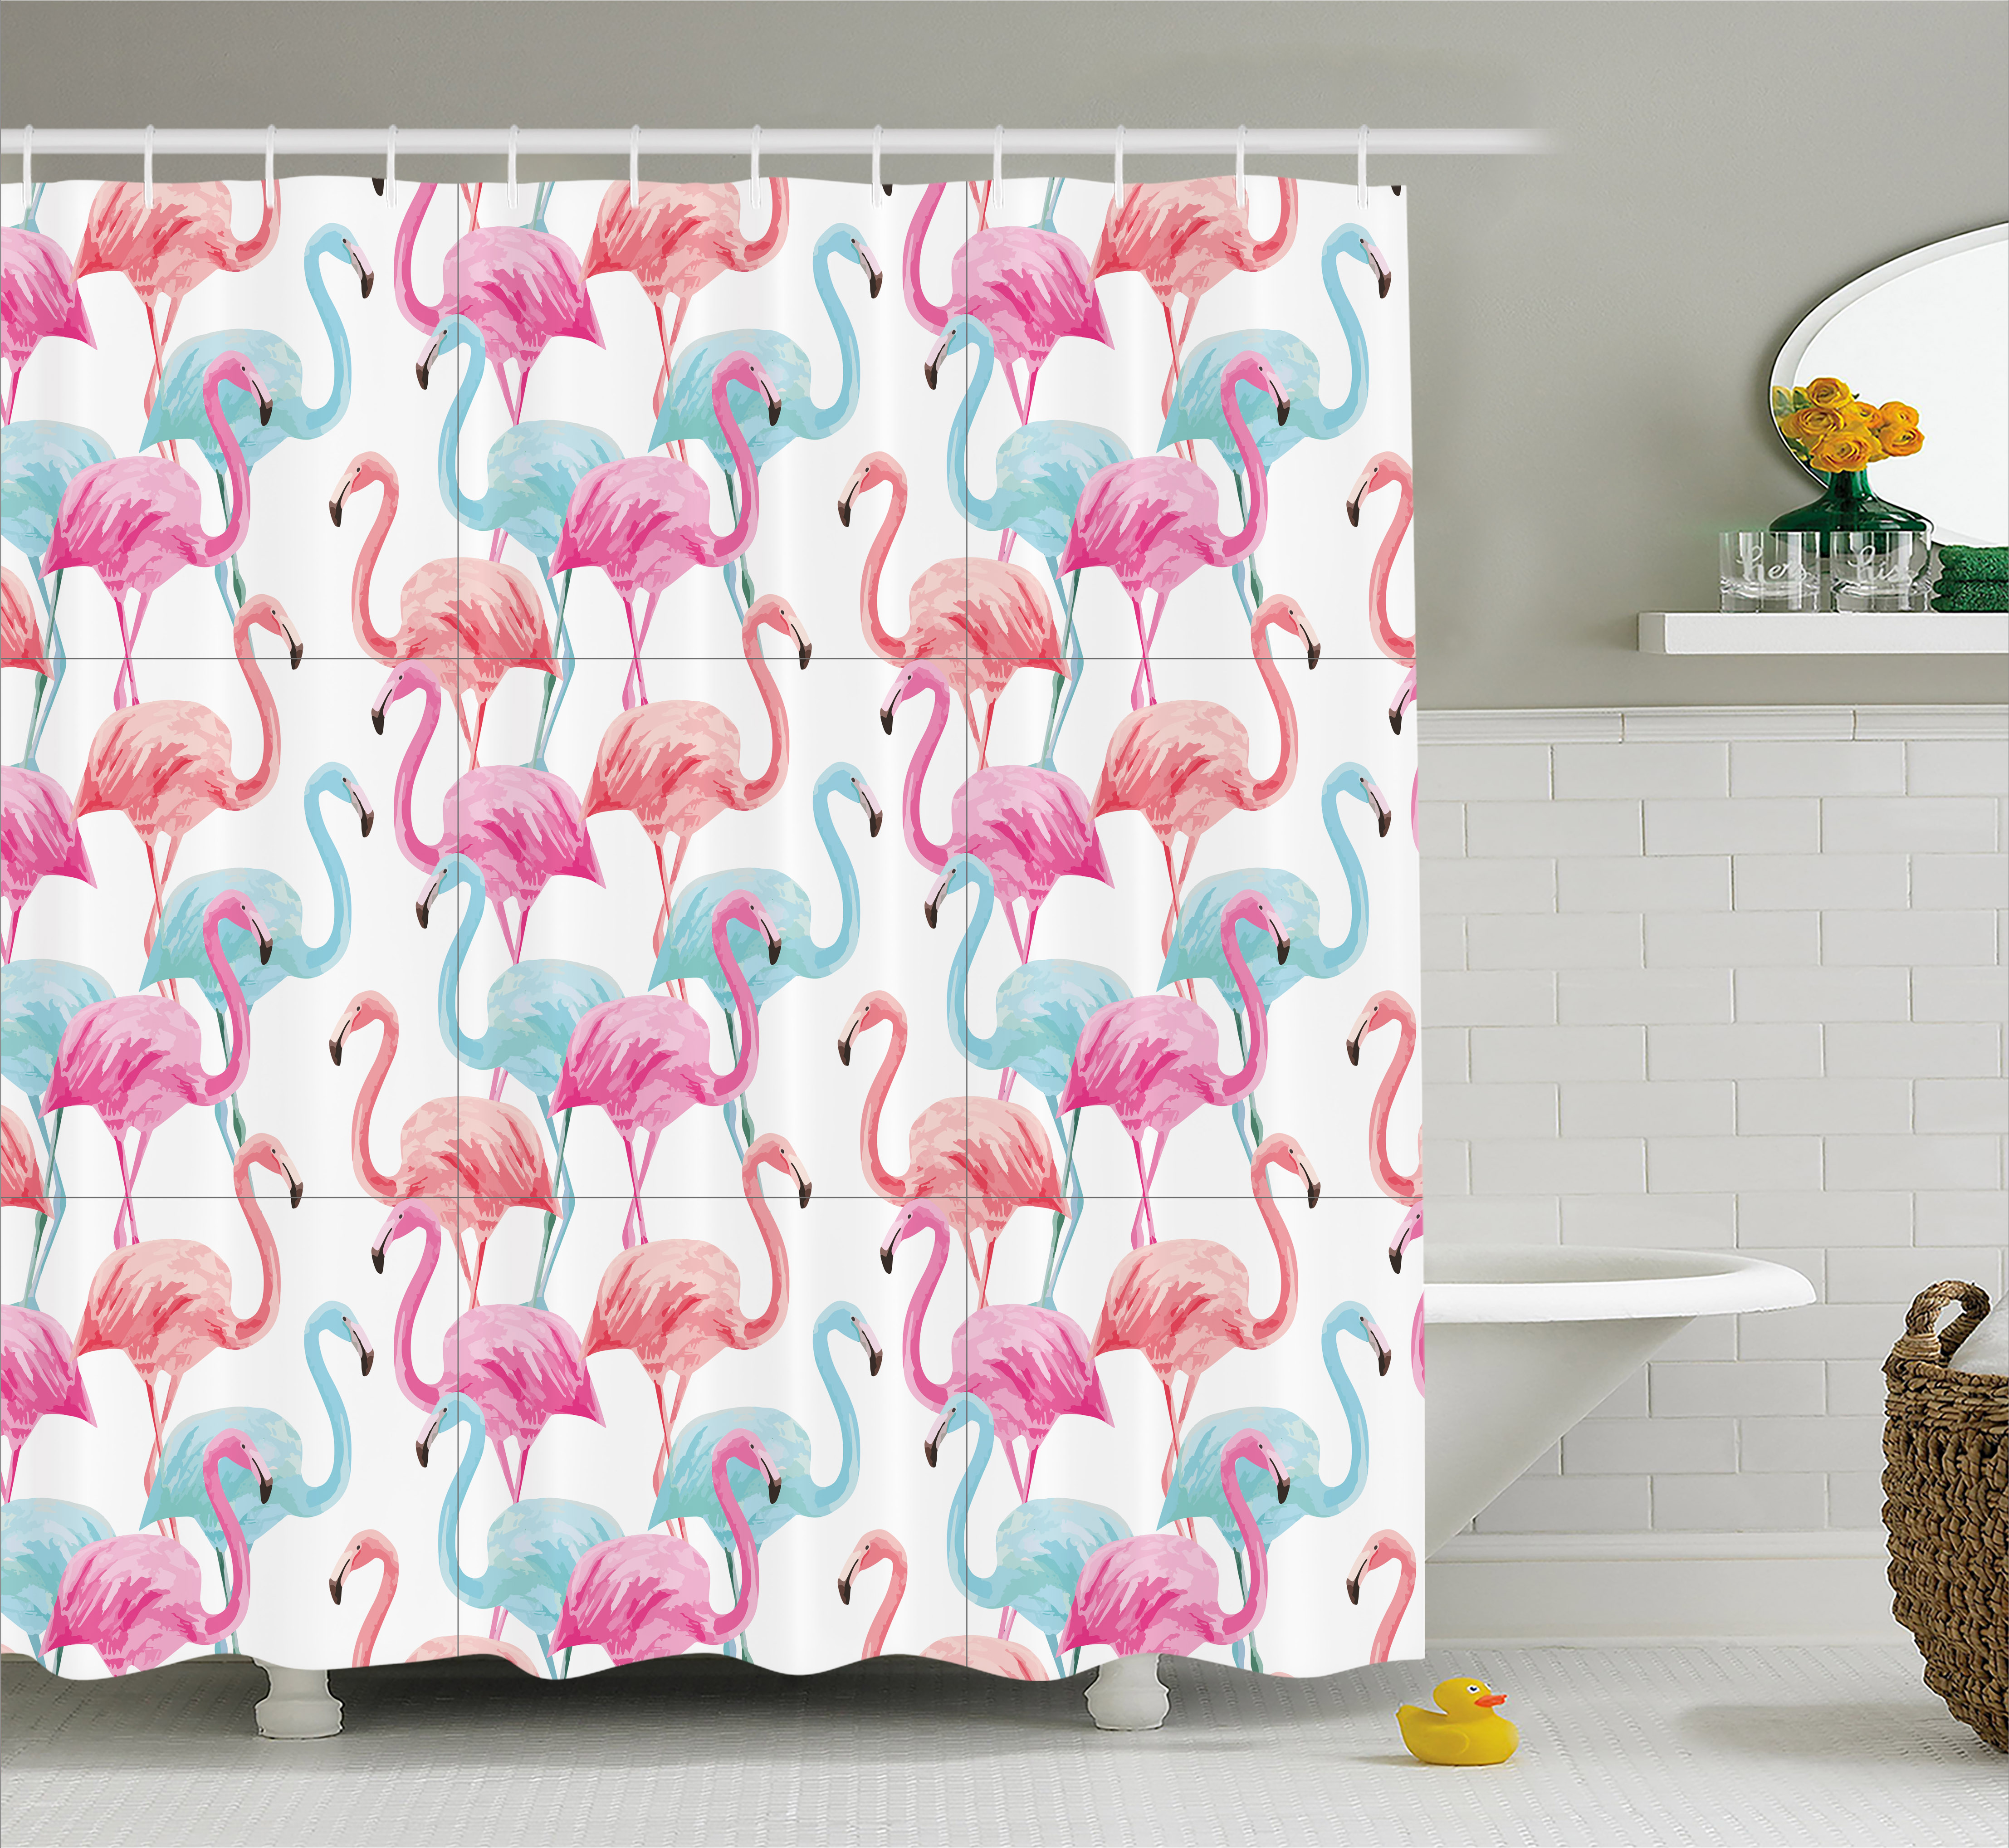 Watercolor Shower Curtain, Flamingos in Many Colors Hand Drawn Bird Exotic Animals Illustration, Fabric Bathroom Set with Hooks, 69W X 70L Inches, Baby Blue Salmon Pink, by Ambesonne